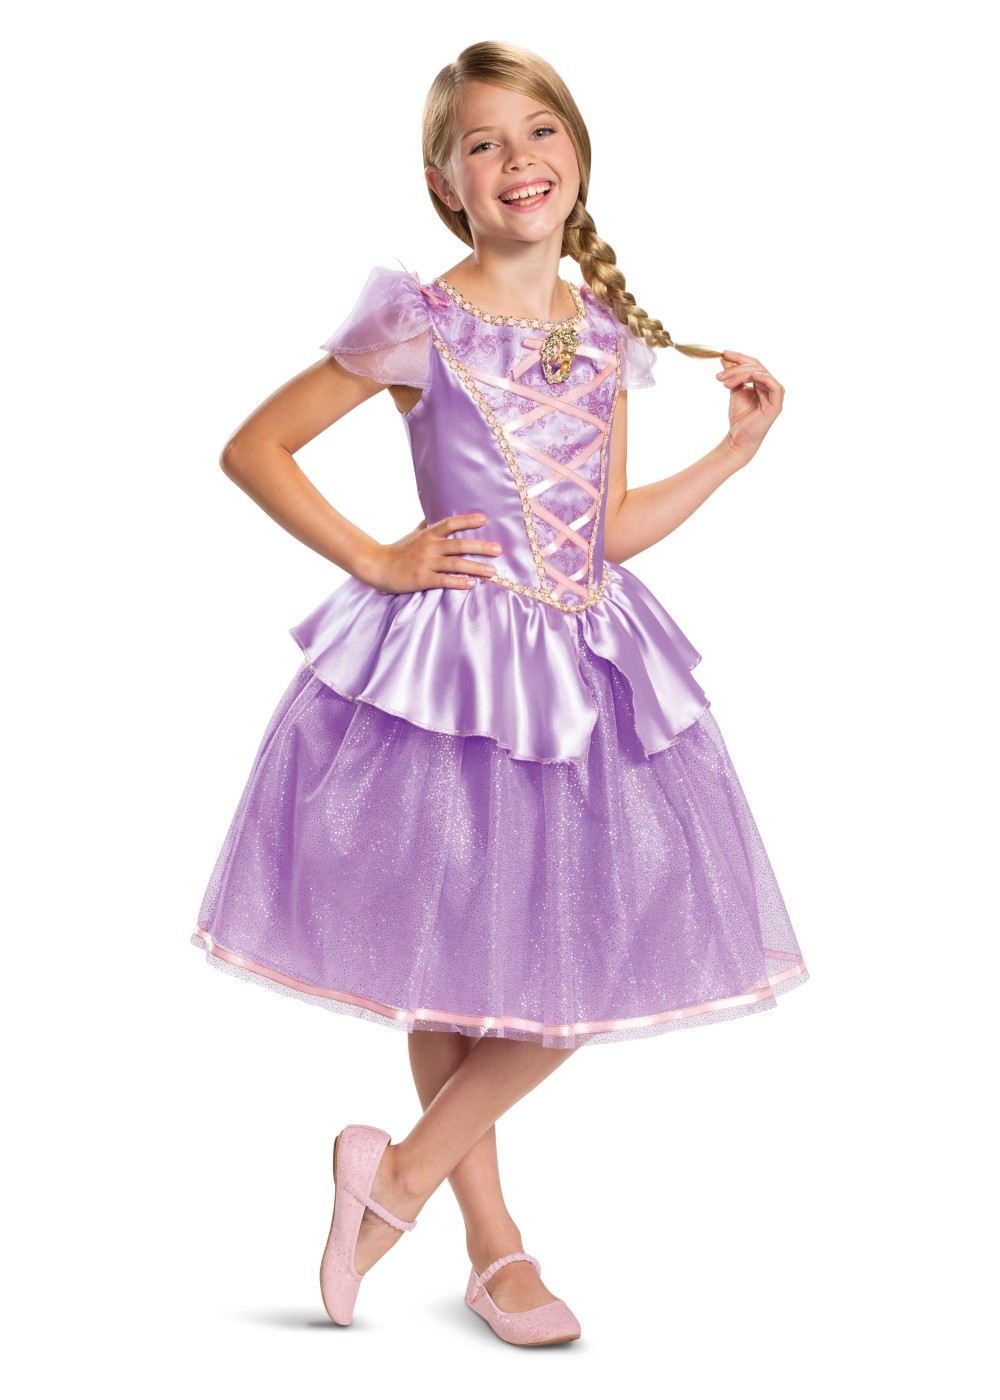 Kids Disneys Rapunzel Girl Costume